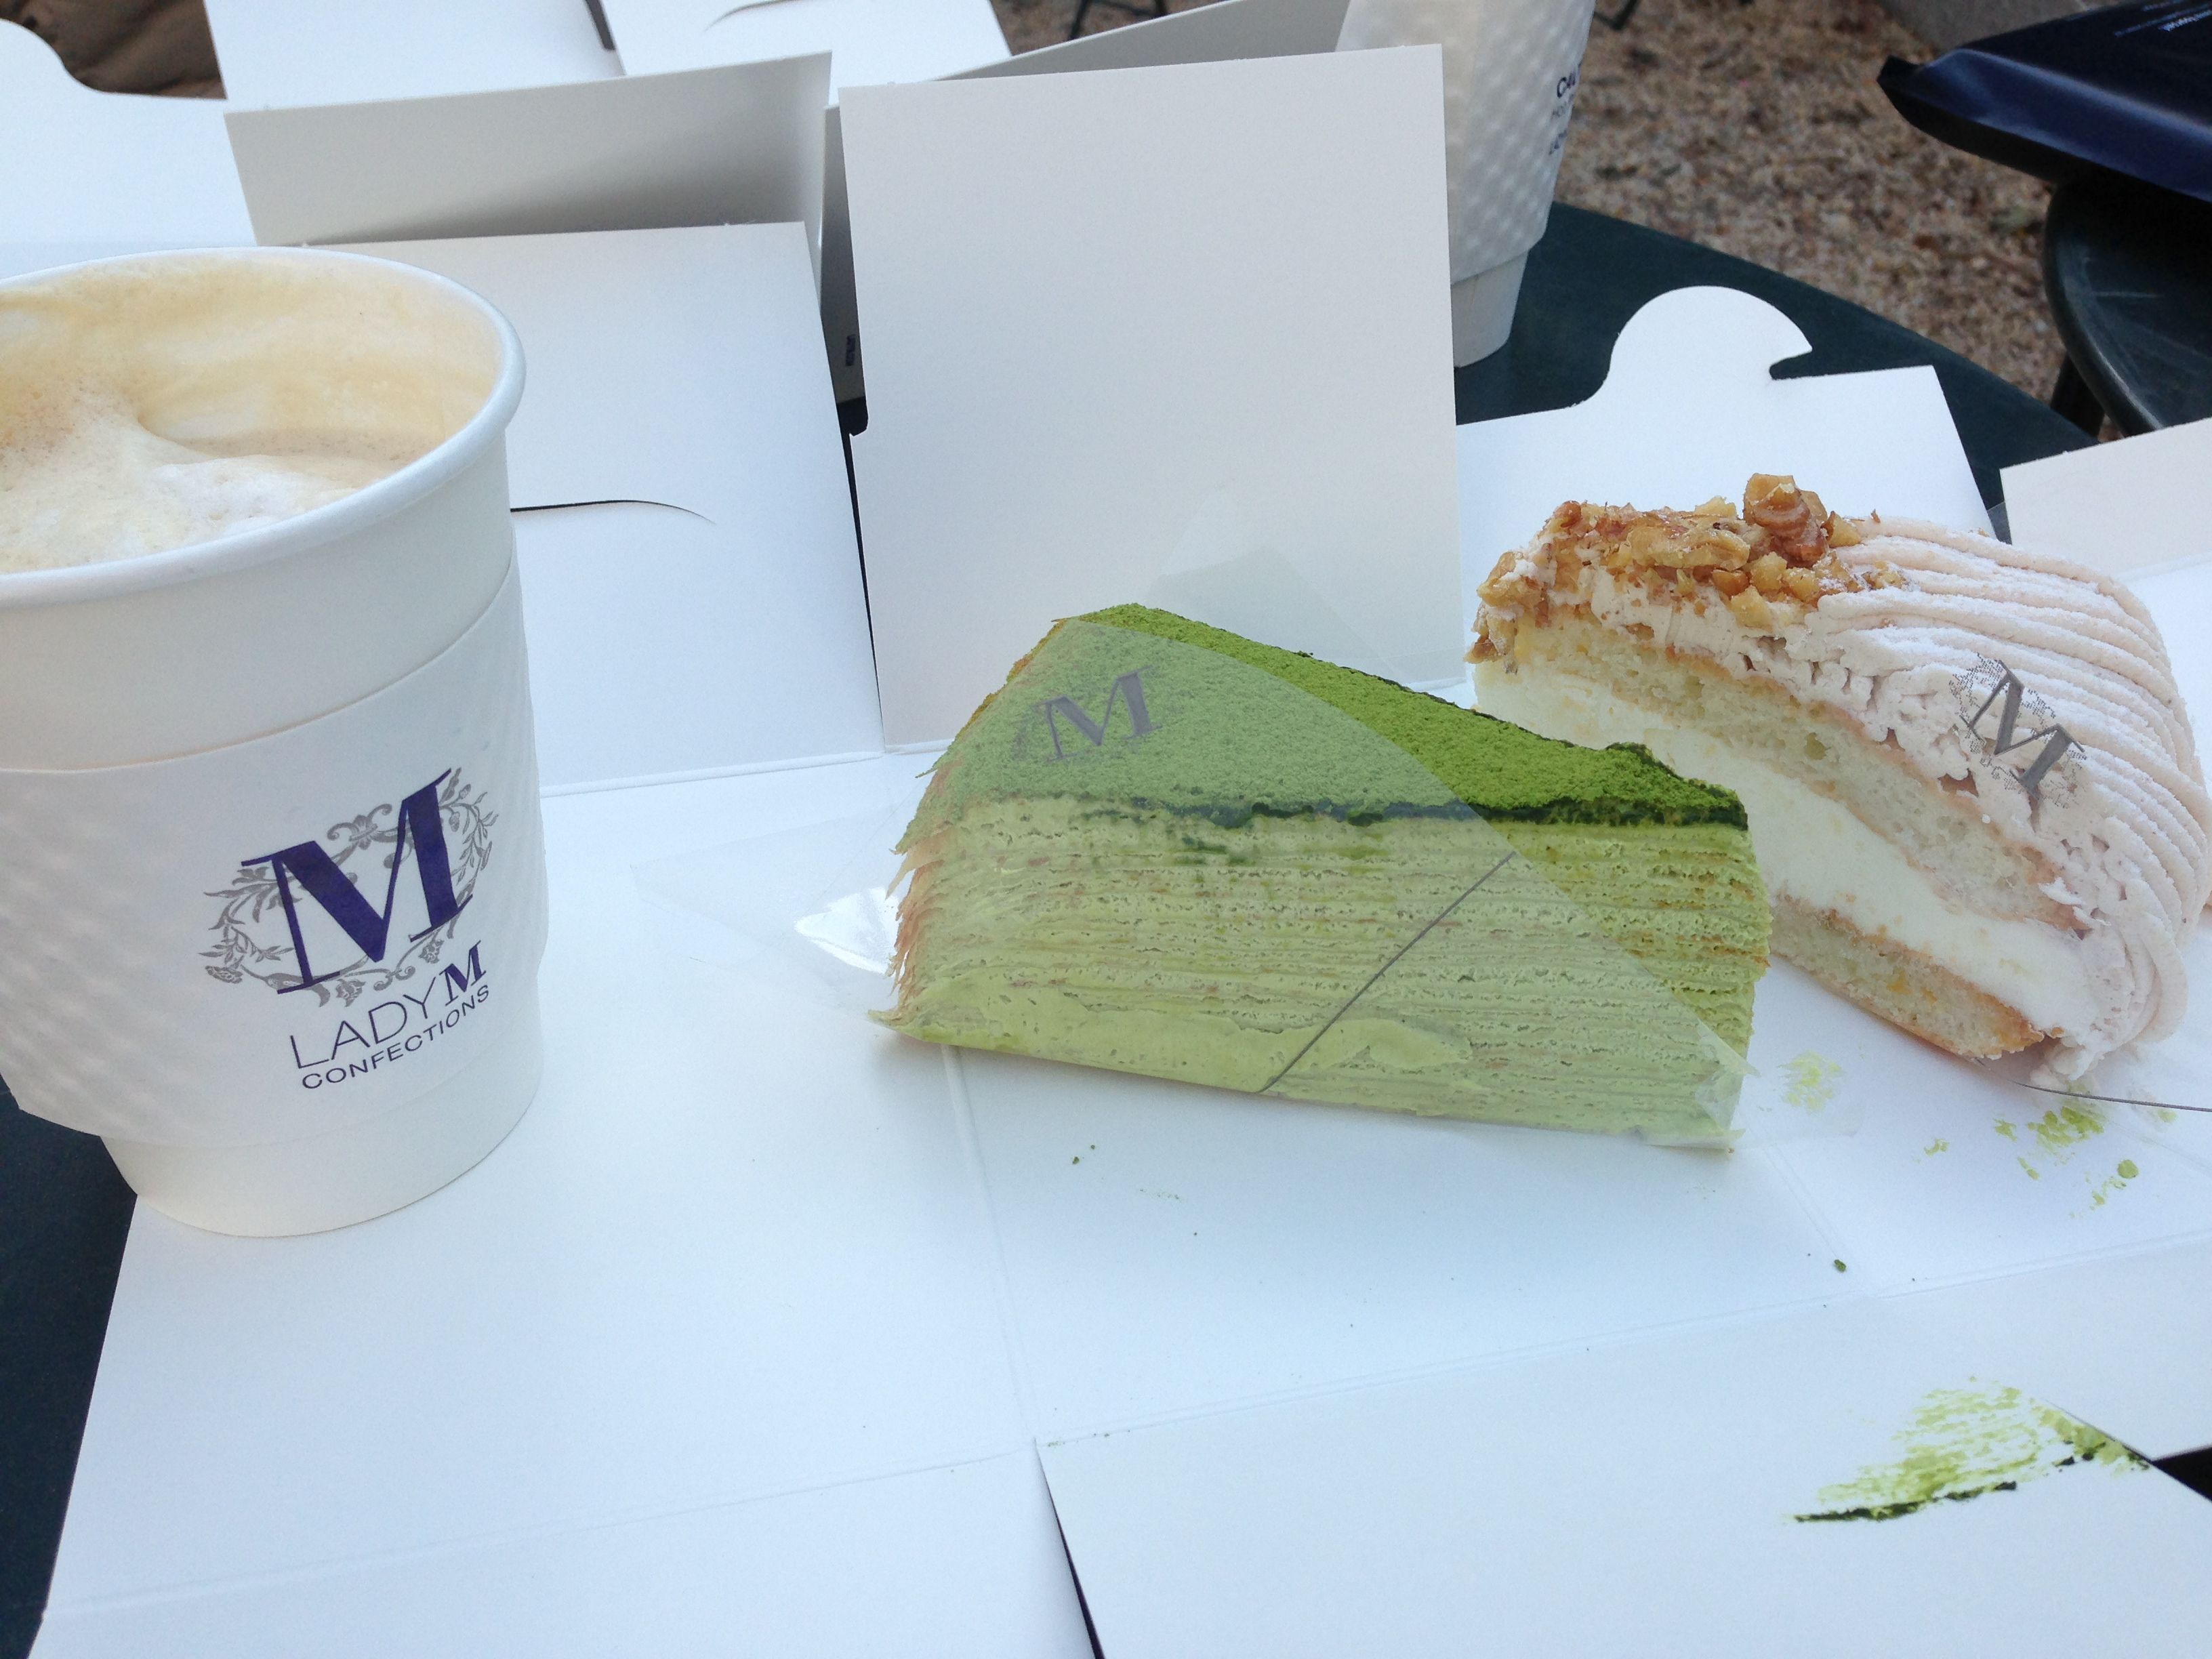 Green Tea Mille Crepe Cake And Chestnut Cake From Lady M 36 W 40th